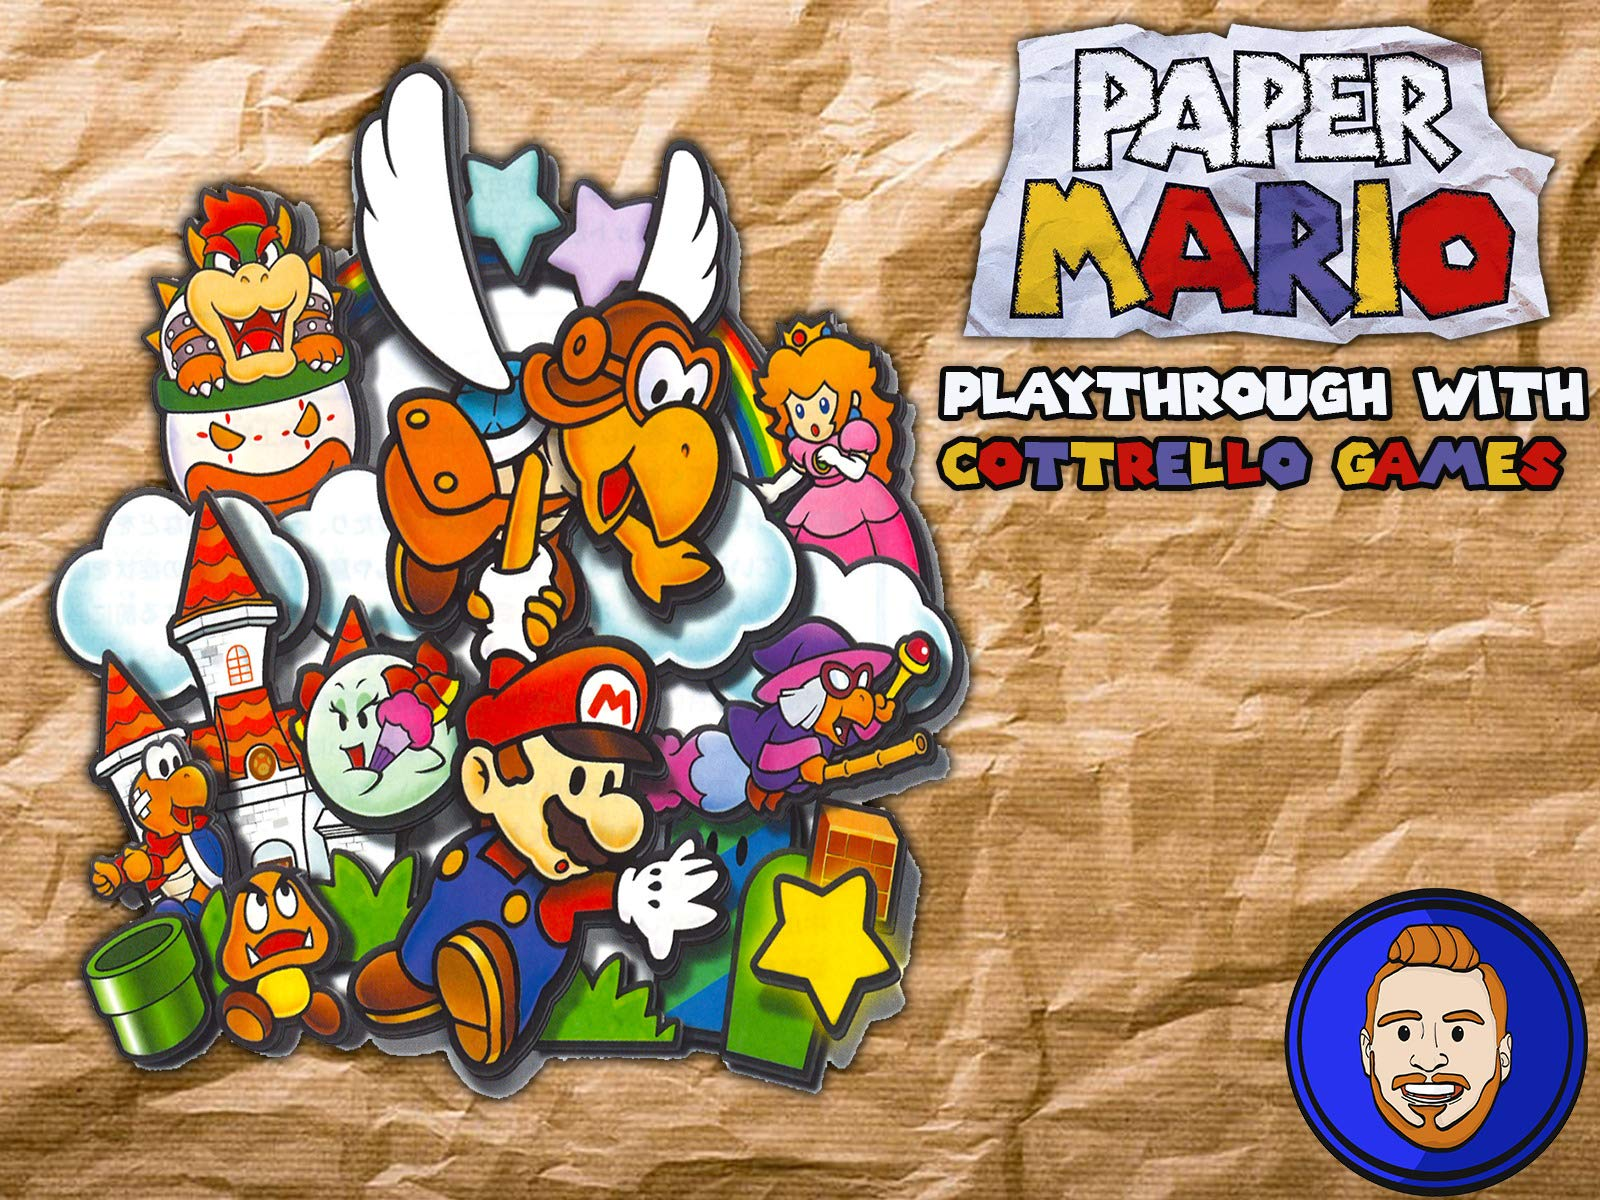 Paper Mario Playthrough with Cottrello Games